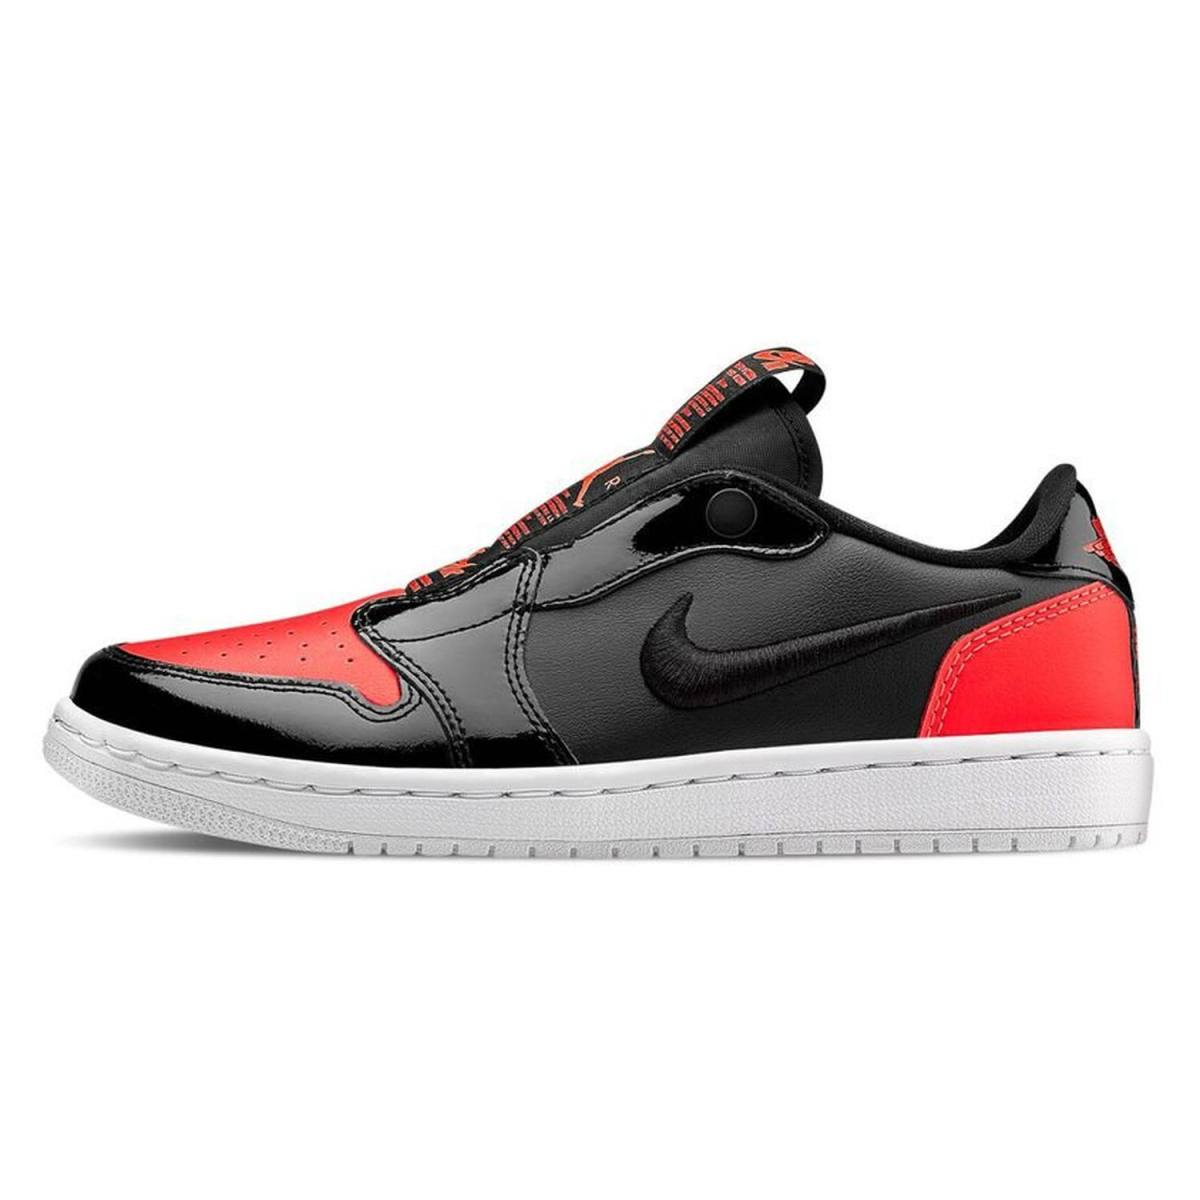 AIR JORDAN 1 RETRO LOW SLIP